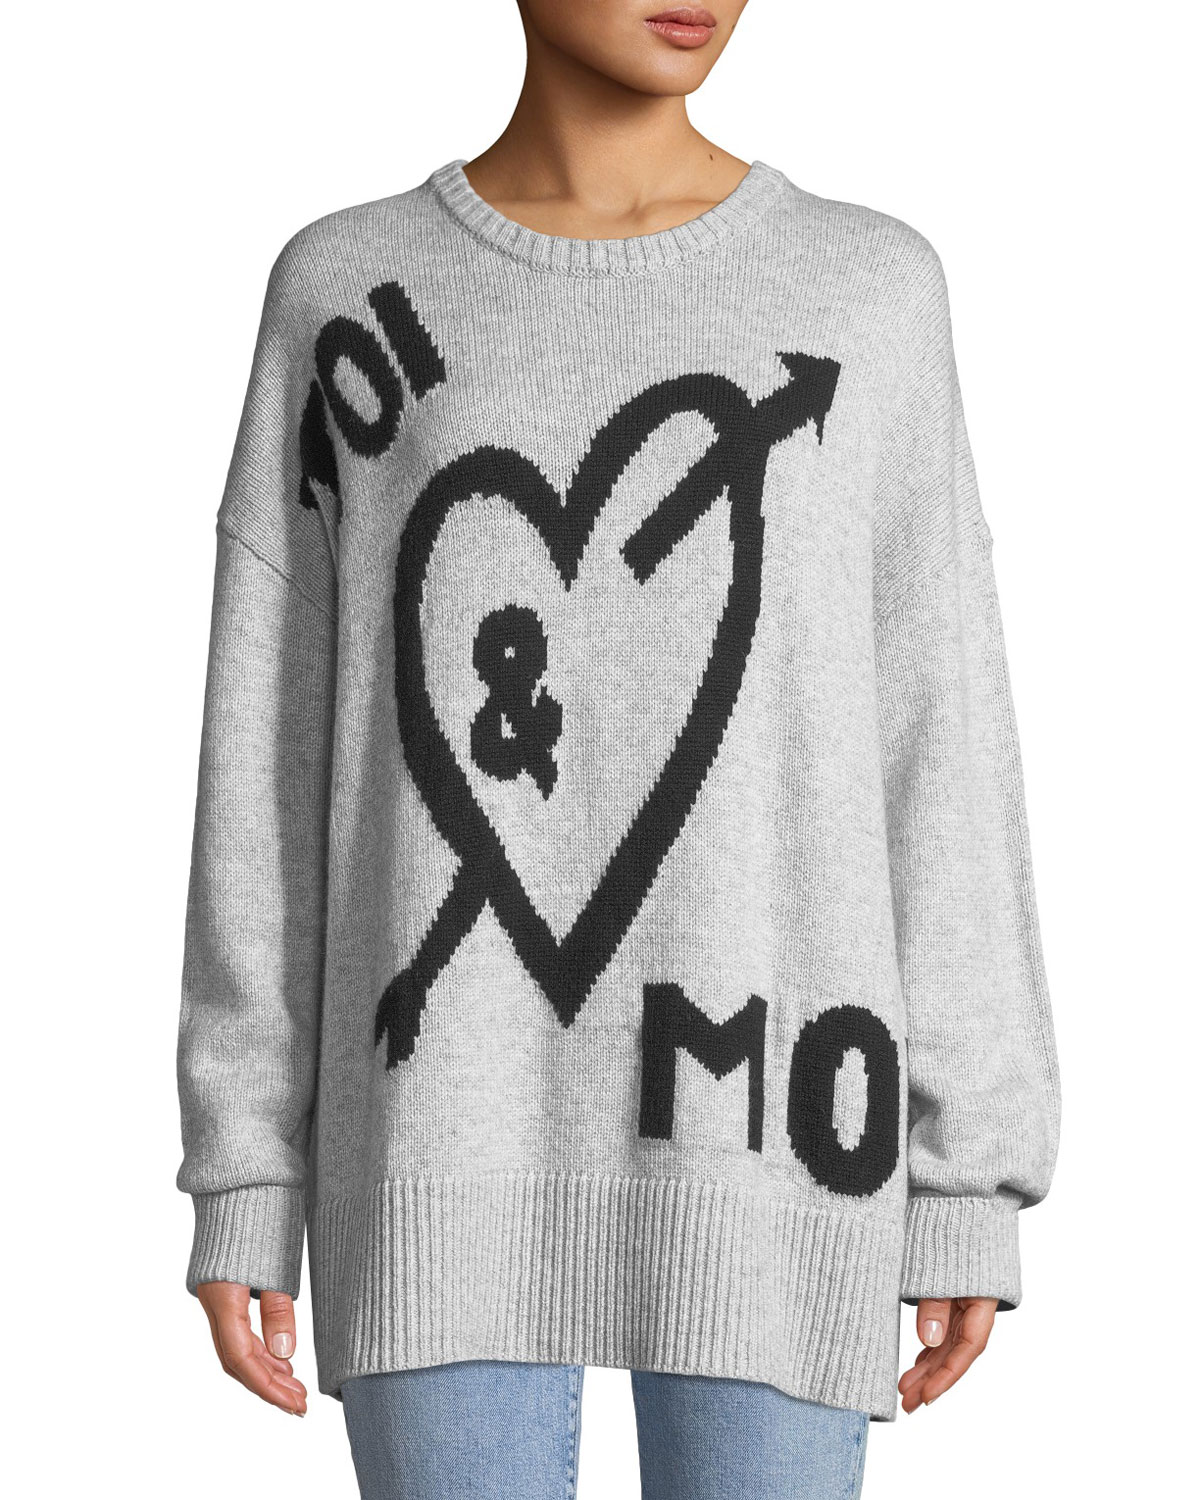 Tara You & Me Graphic Wool-Blend Pullover Sweater